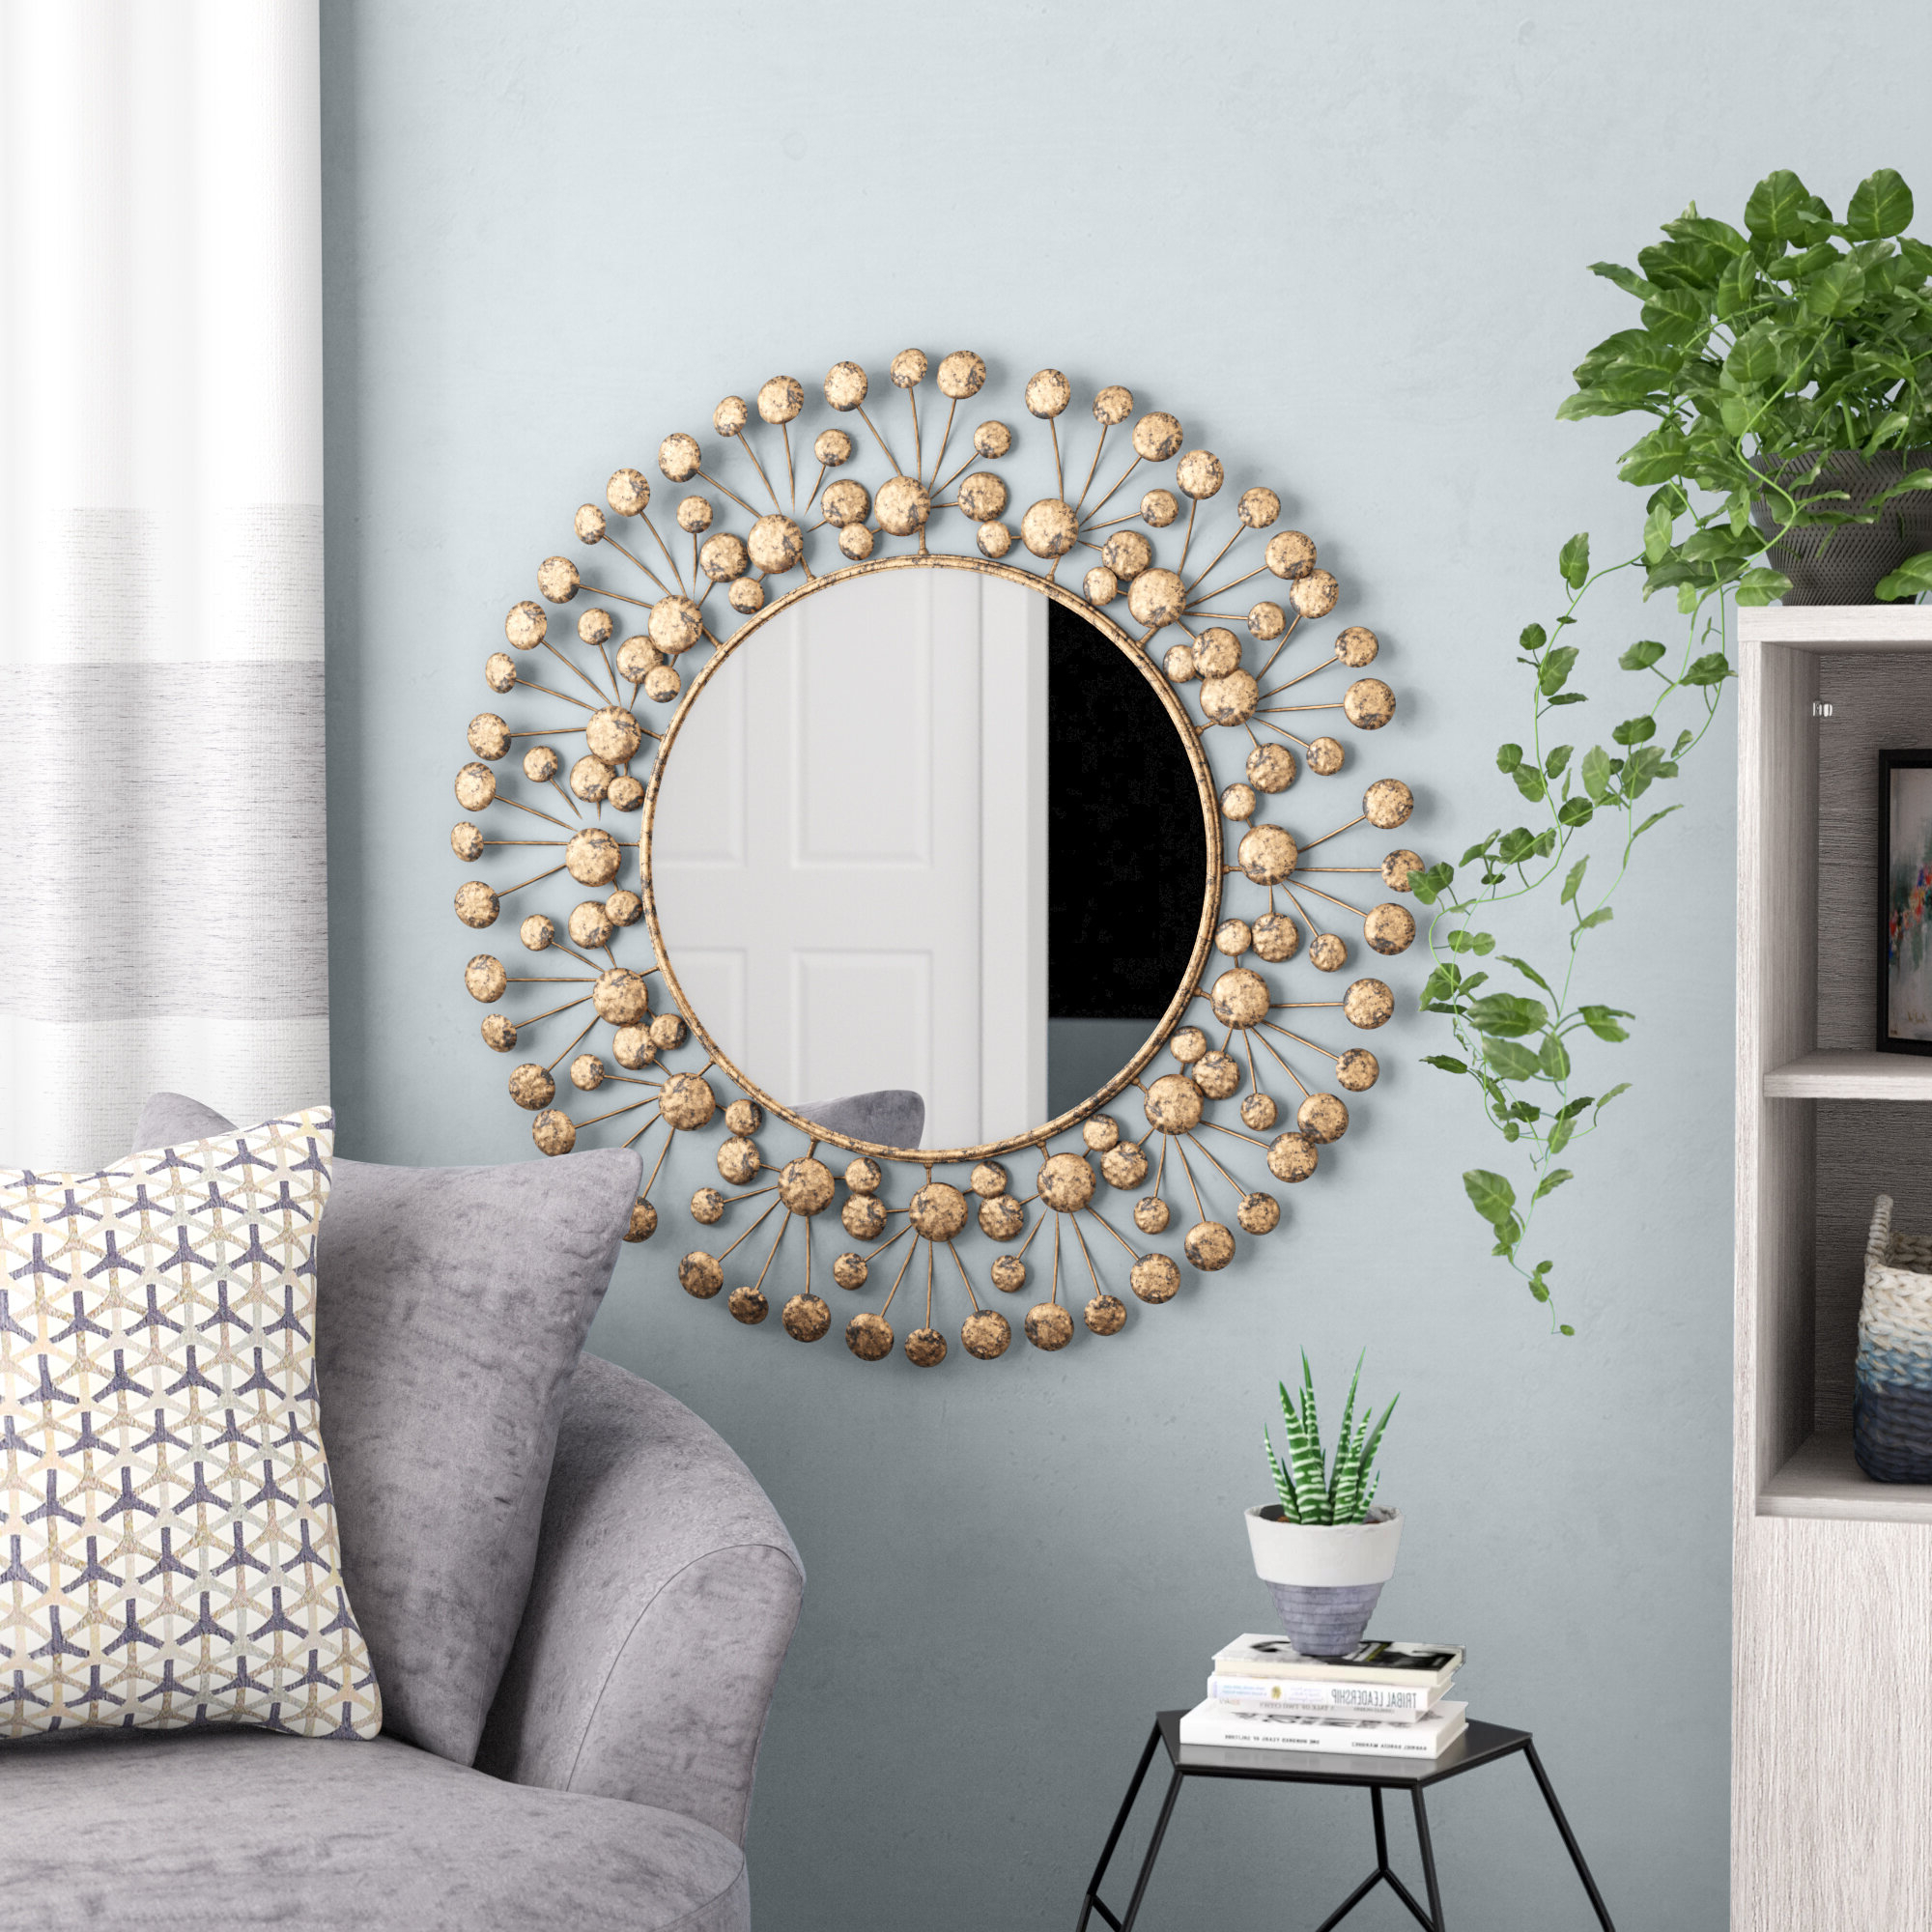 Round Wall Mirrors Intended For Most Up To Date Eisenbarth Oversized Decorative Round Wall Mirror (View 18 of 20)